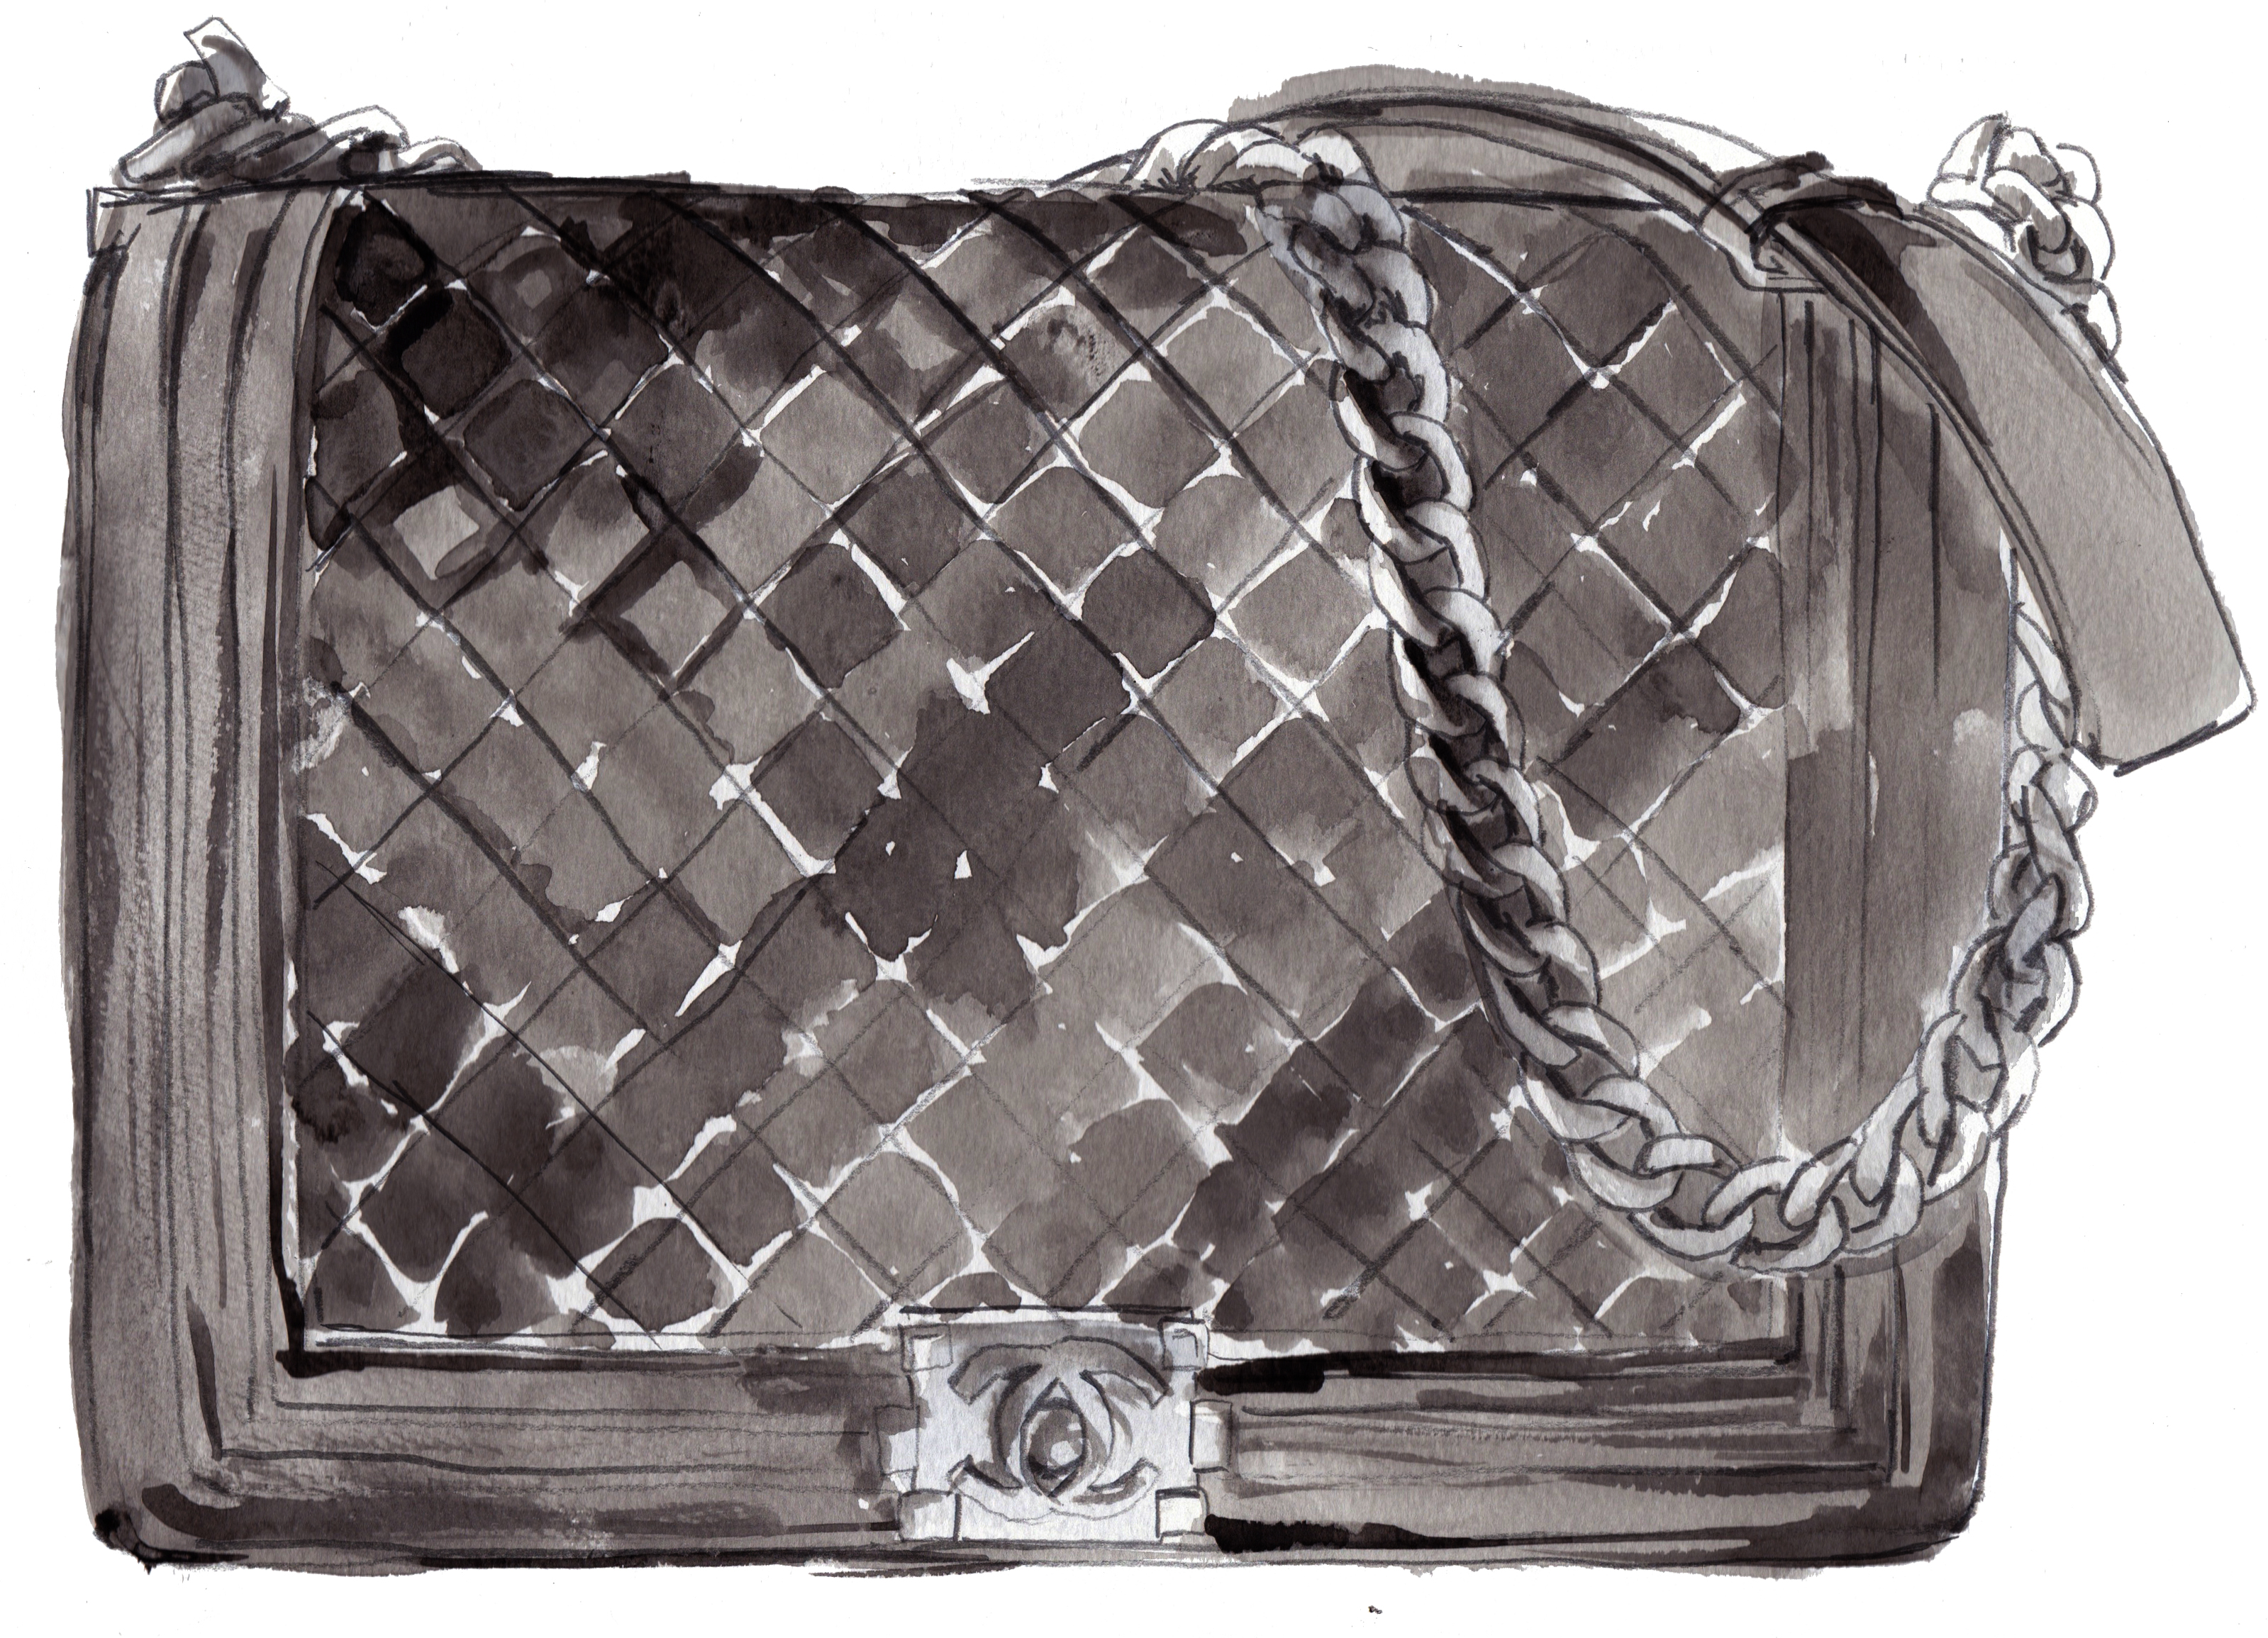 Chanel Bag Illustration Classic Bag – Chanel